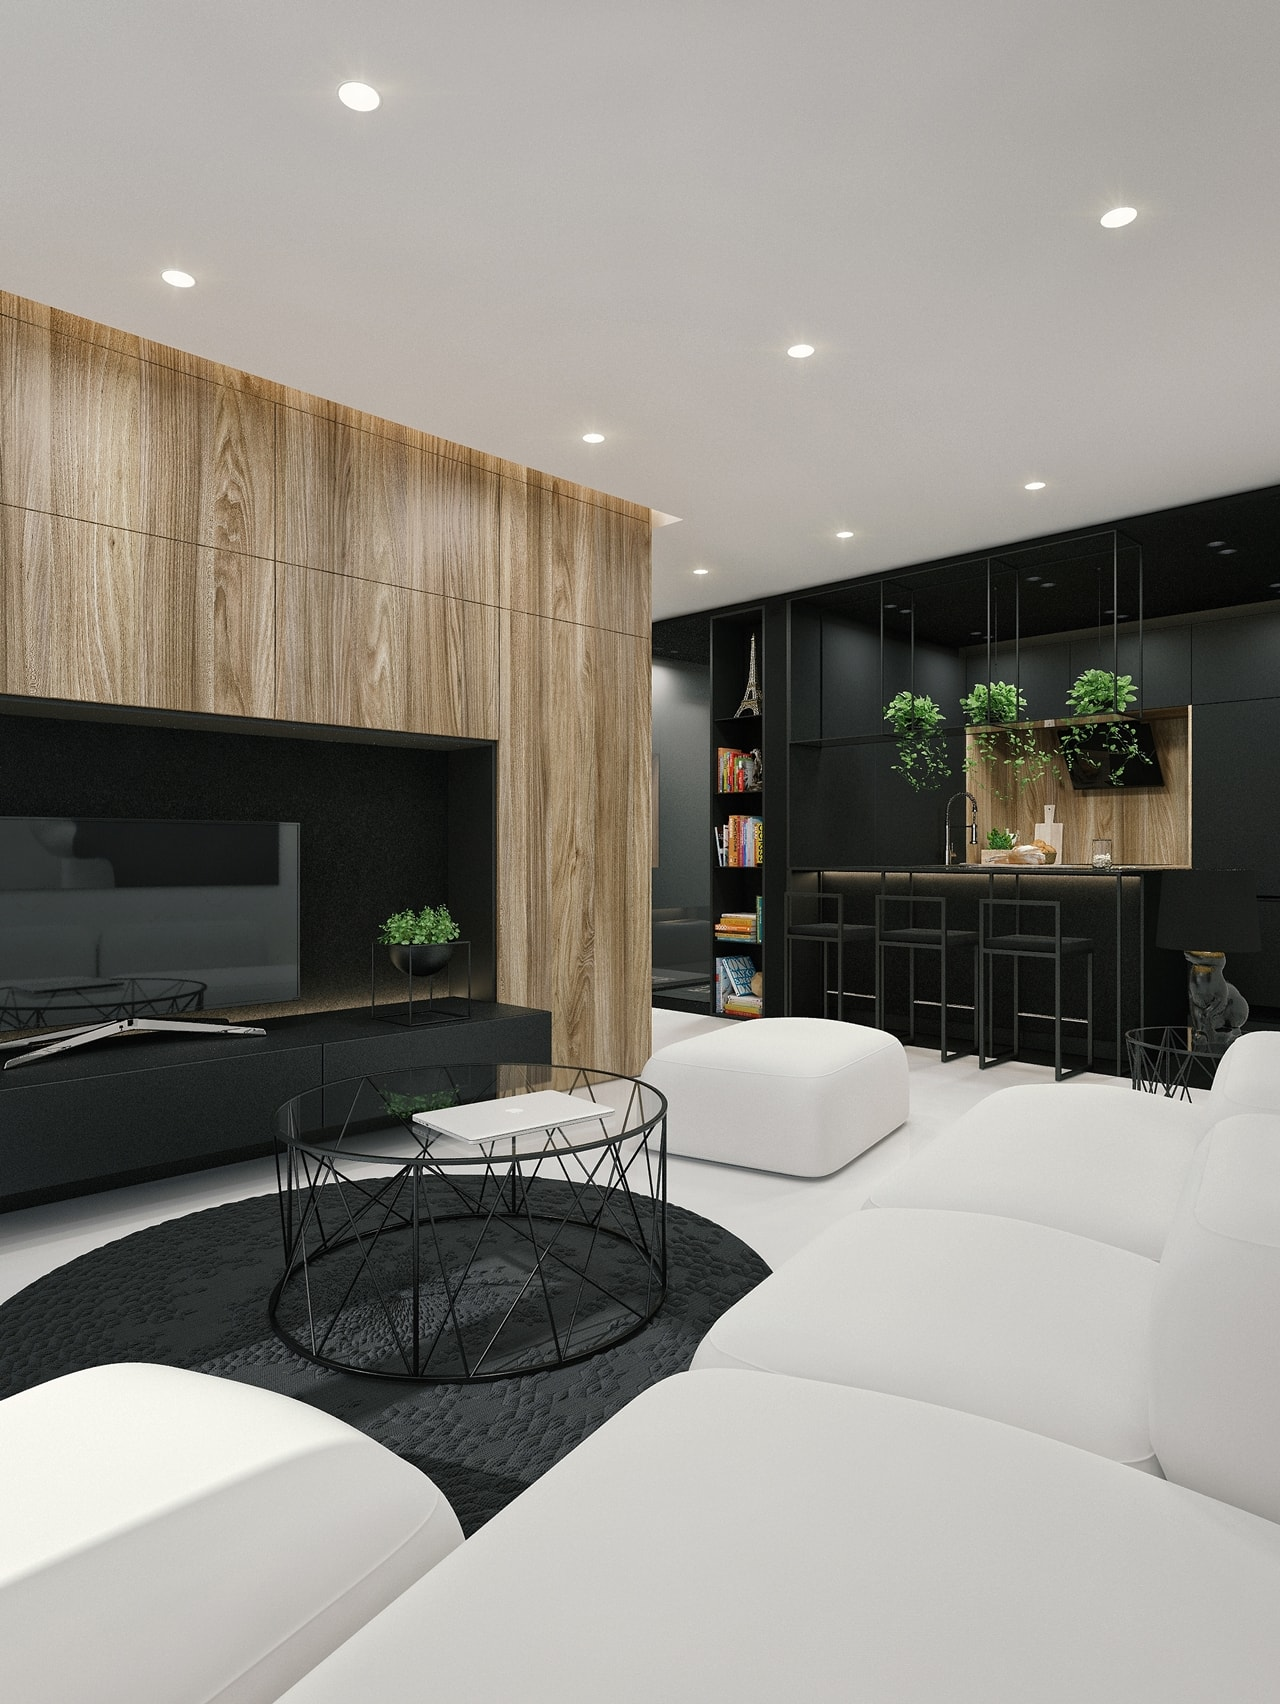 Black and white interior design ideas modern apartment by for Design in a box interior design